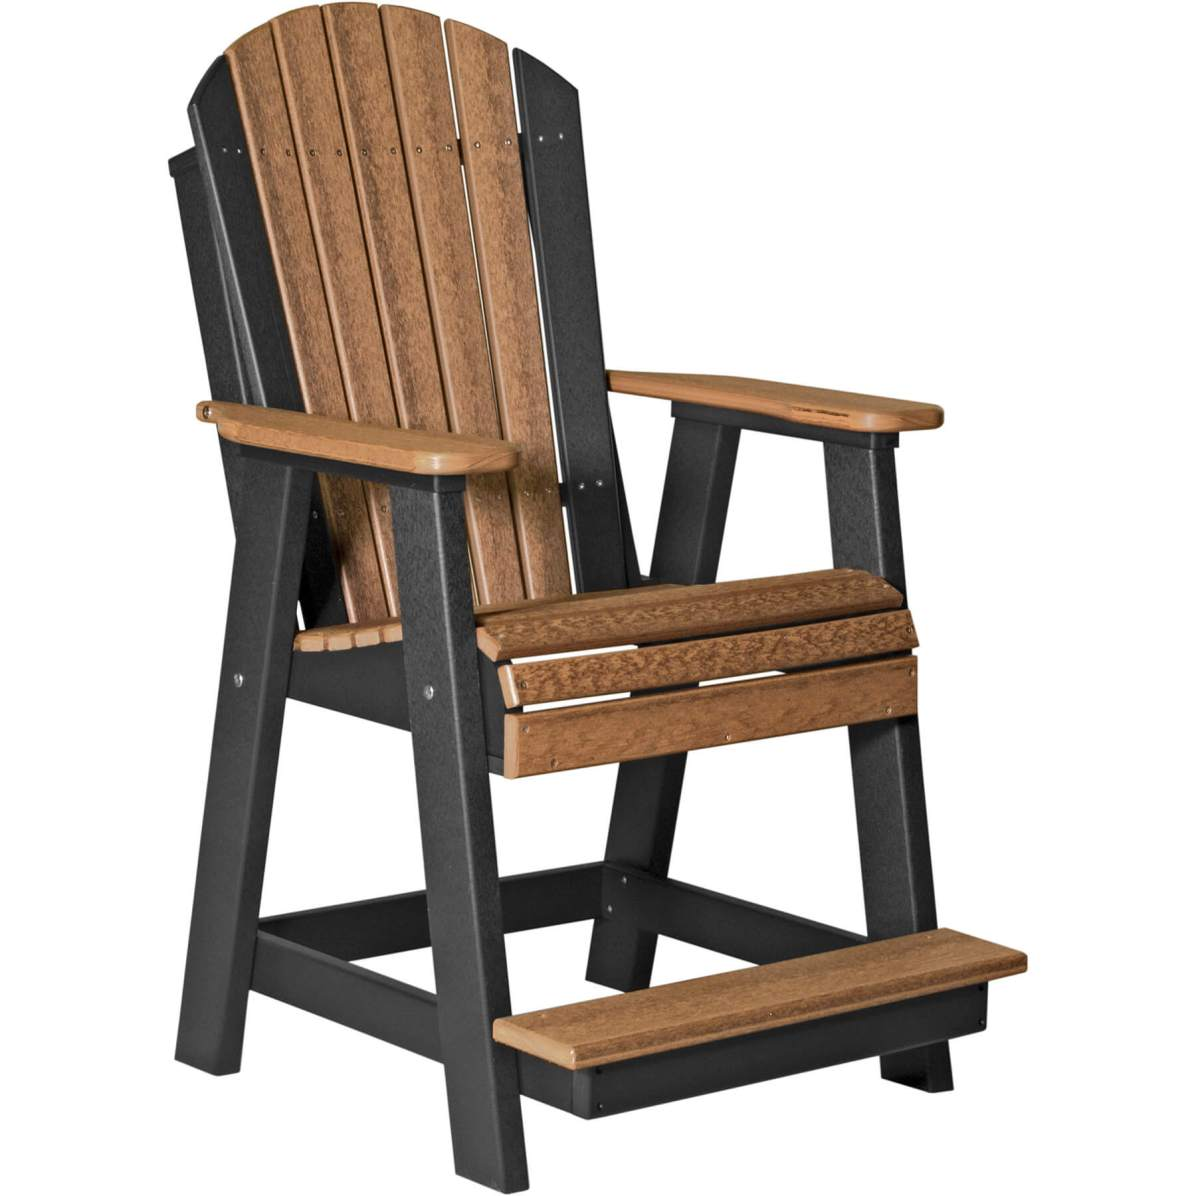 PABCAMB Poly Adirondack Balcony Chair (Antique Mahogany & Black)